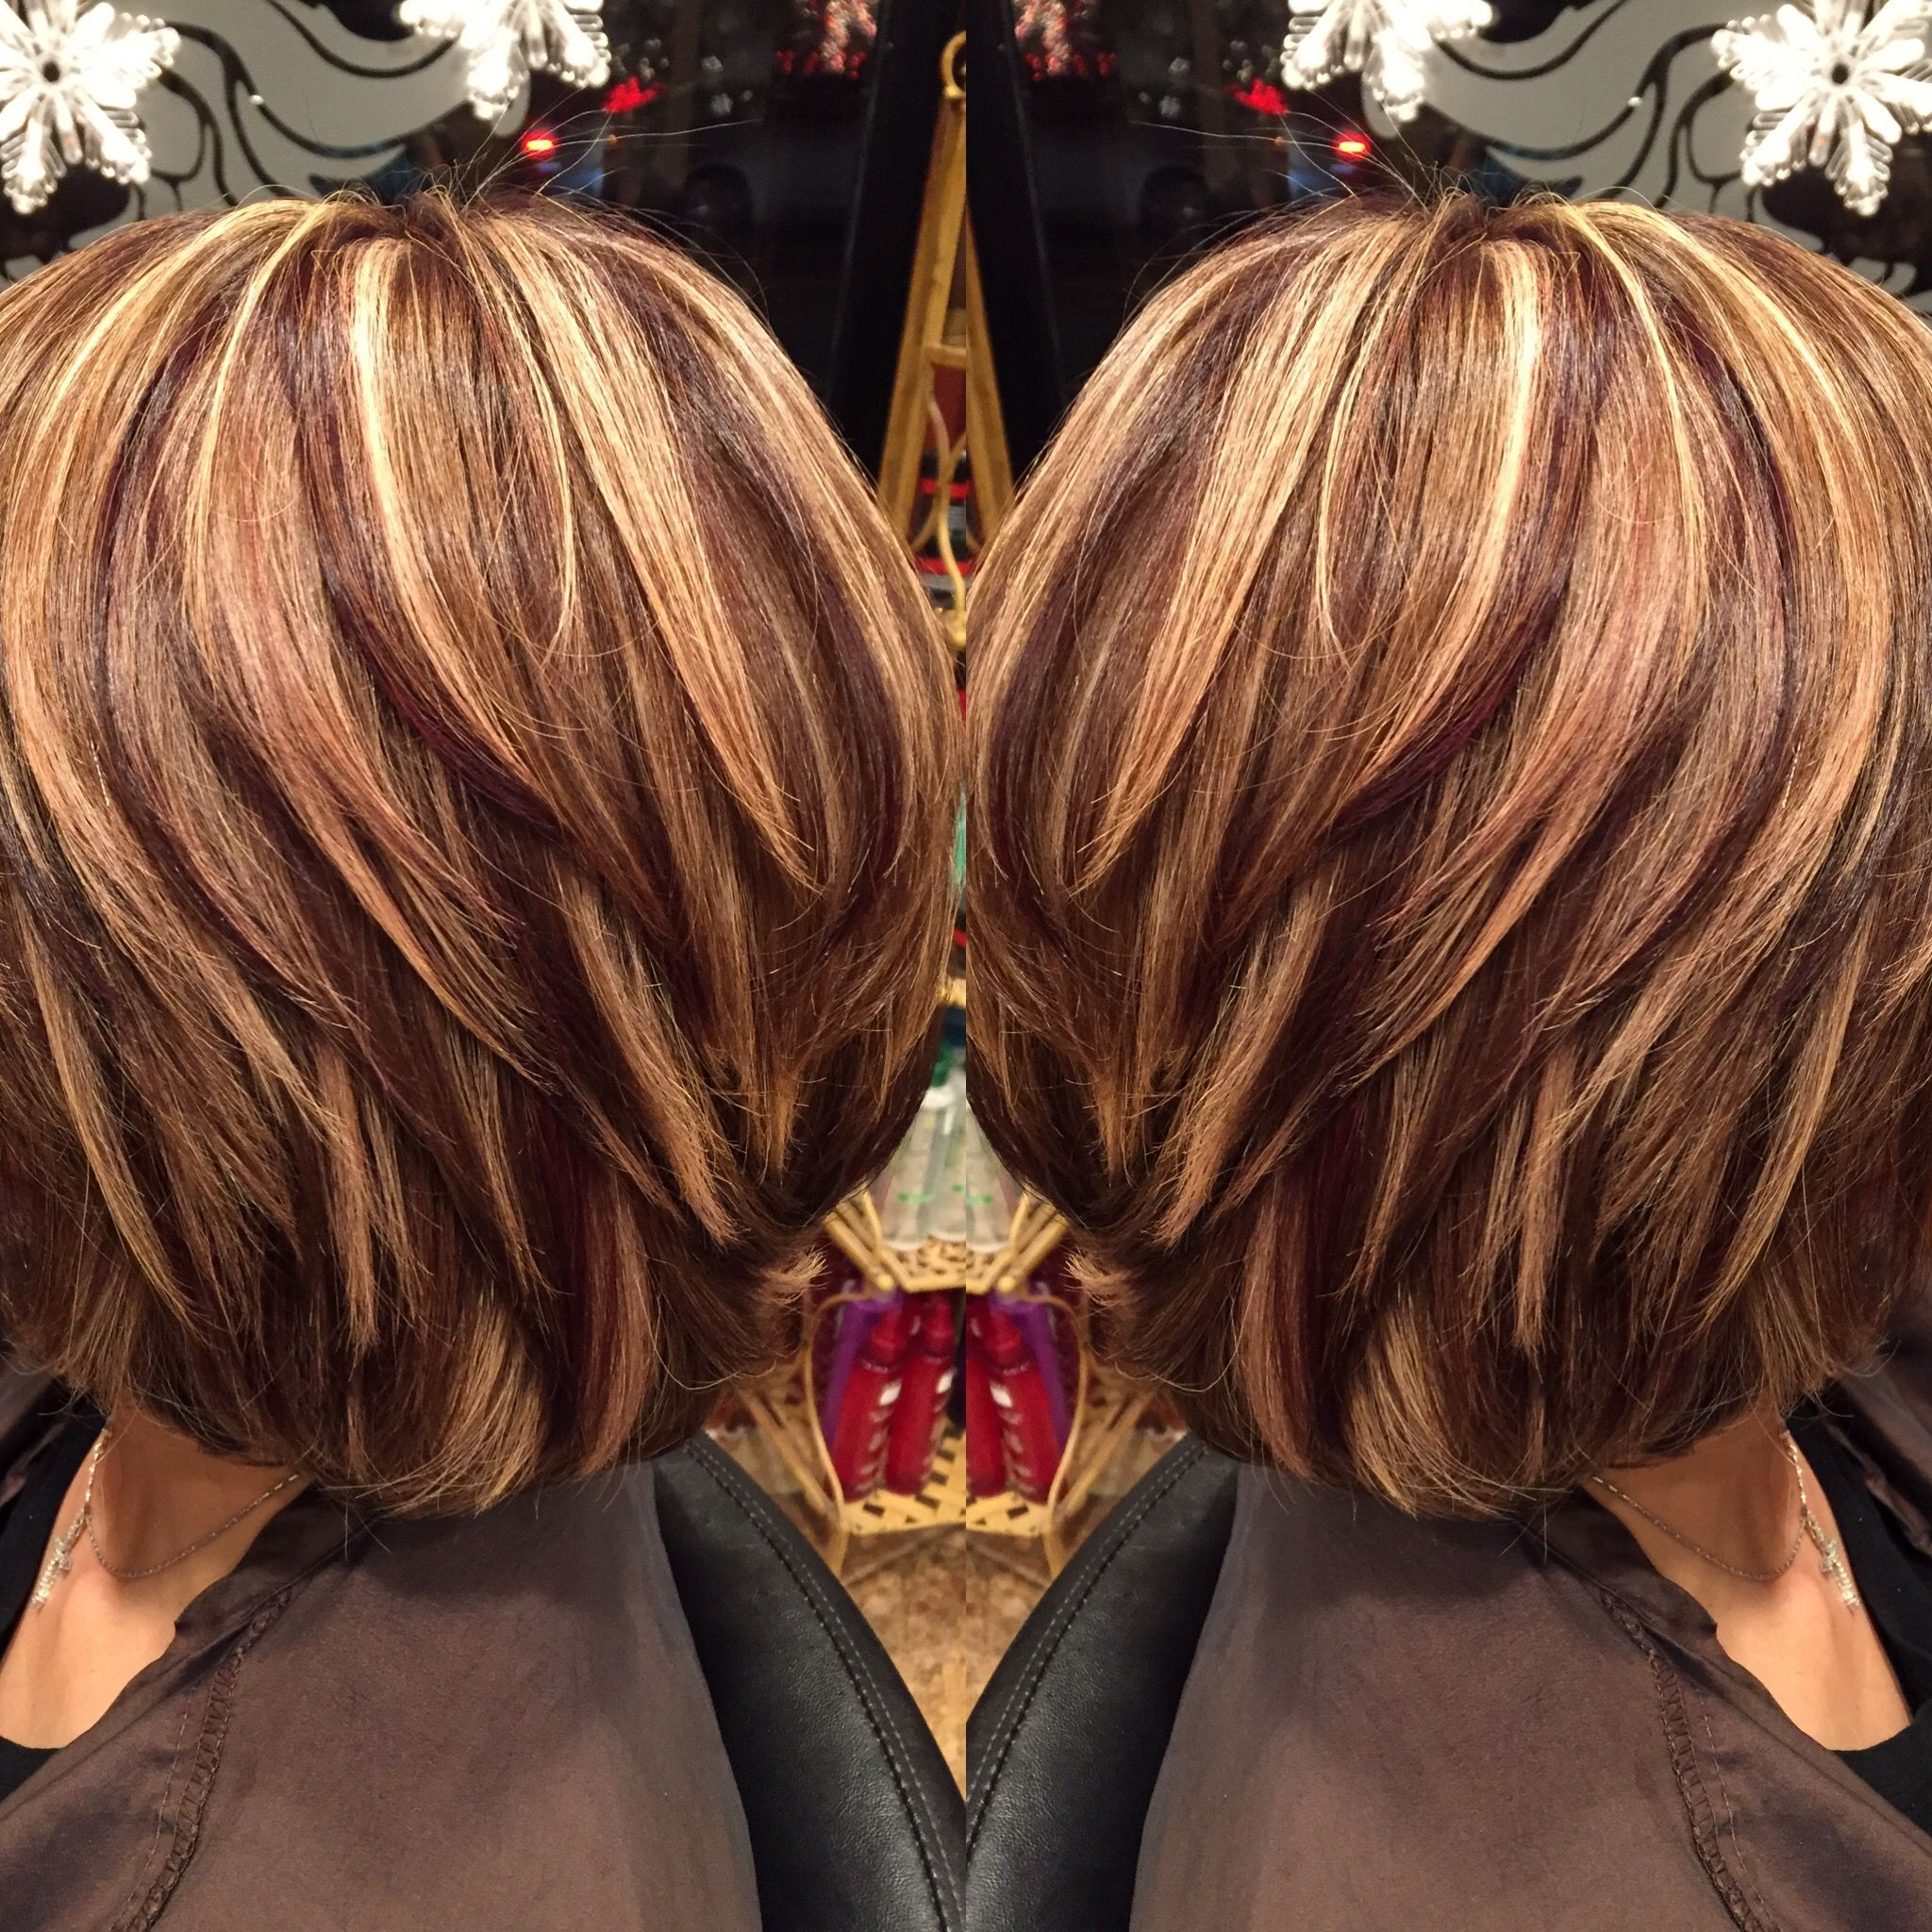 Highlights And Lowlights Josephashleysalon Http Coffeespoonslytherin Tumblr Com Post 157380175497 Finger Hair Styles Fall Hair Highlights Short Hair Styles